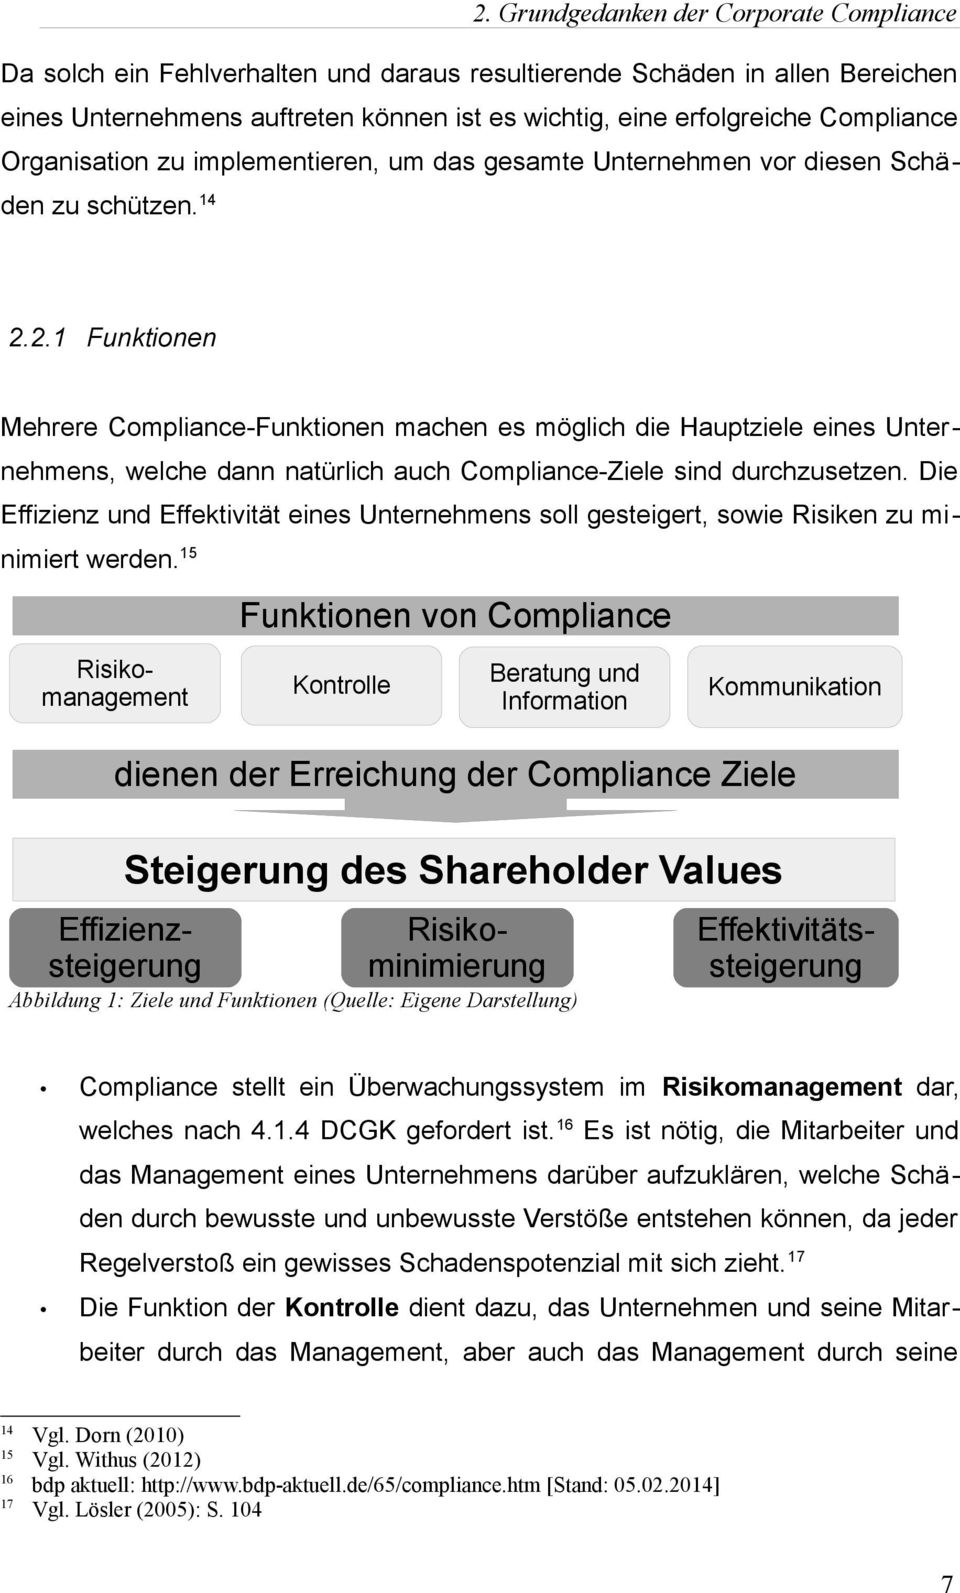 Dorable Compliance Und Risikomanagement Lebenslauf Illustration ...